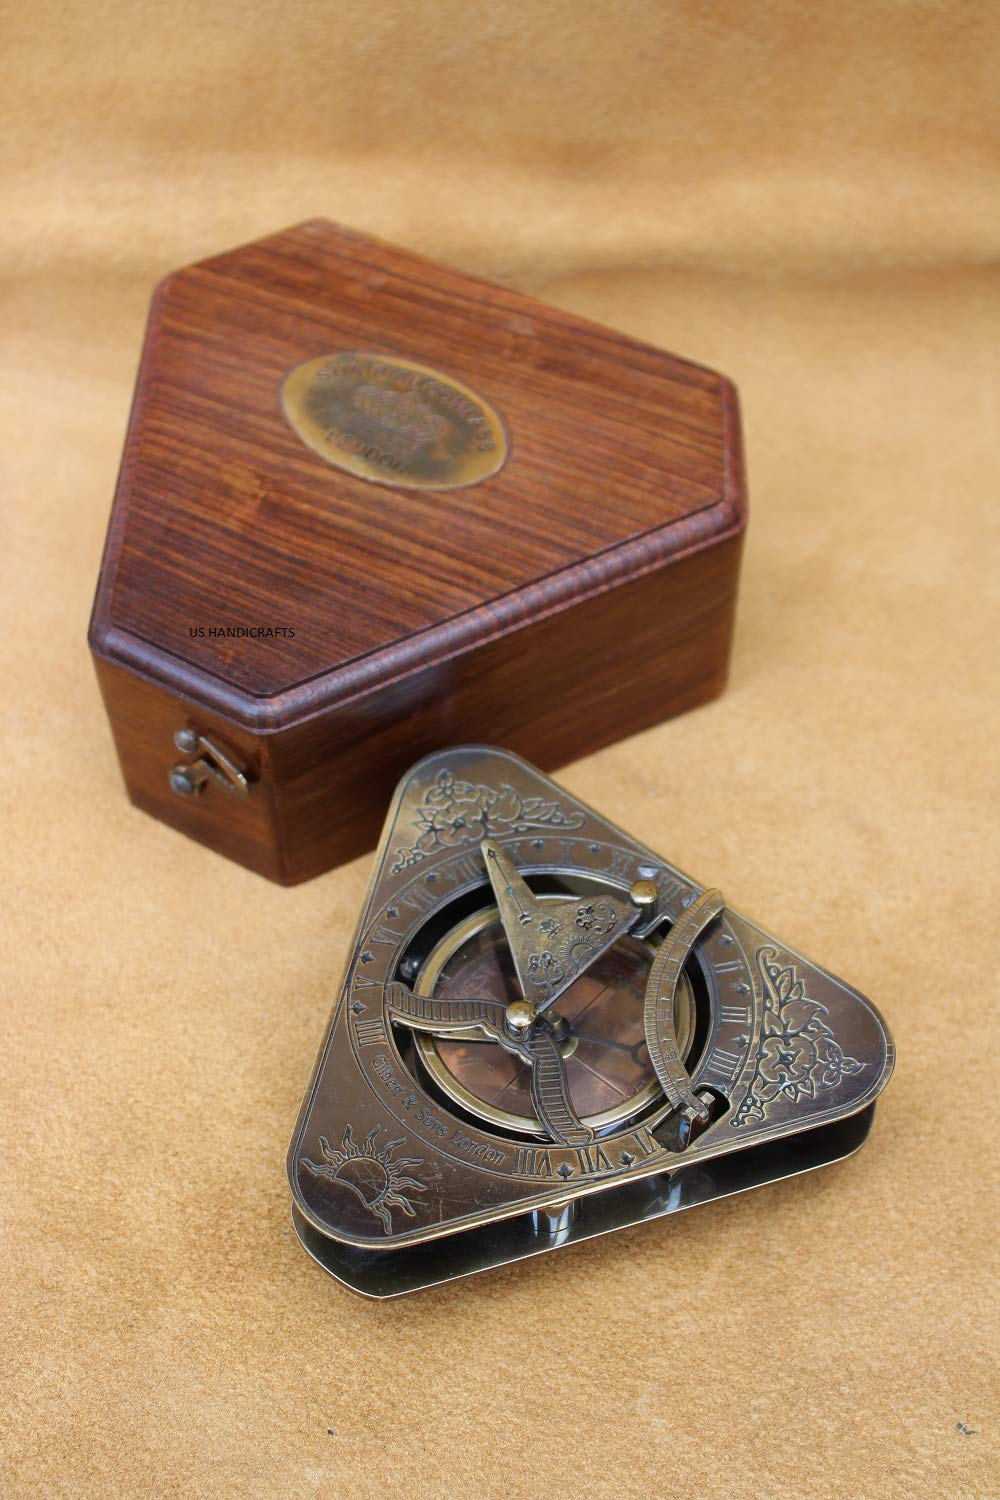 US Handicrafts History Brass Triangle Sundial Compass in Hardwood Box. by US Handicrafts (Image #5)